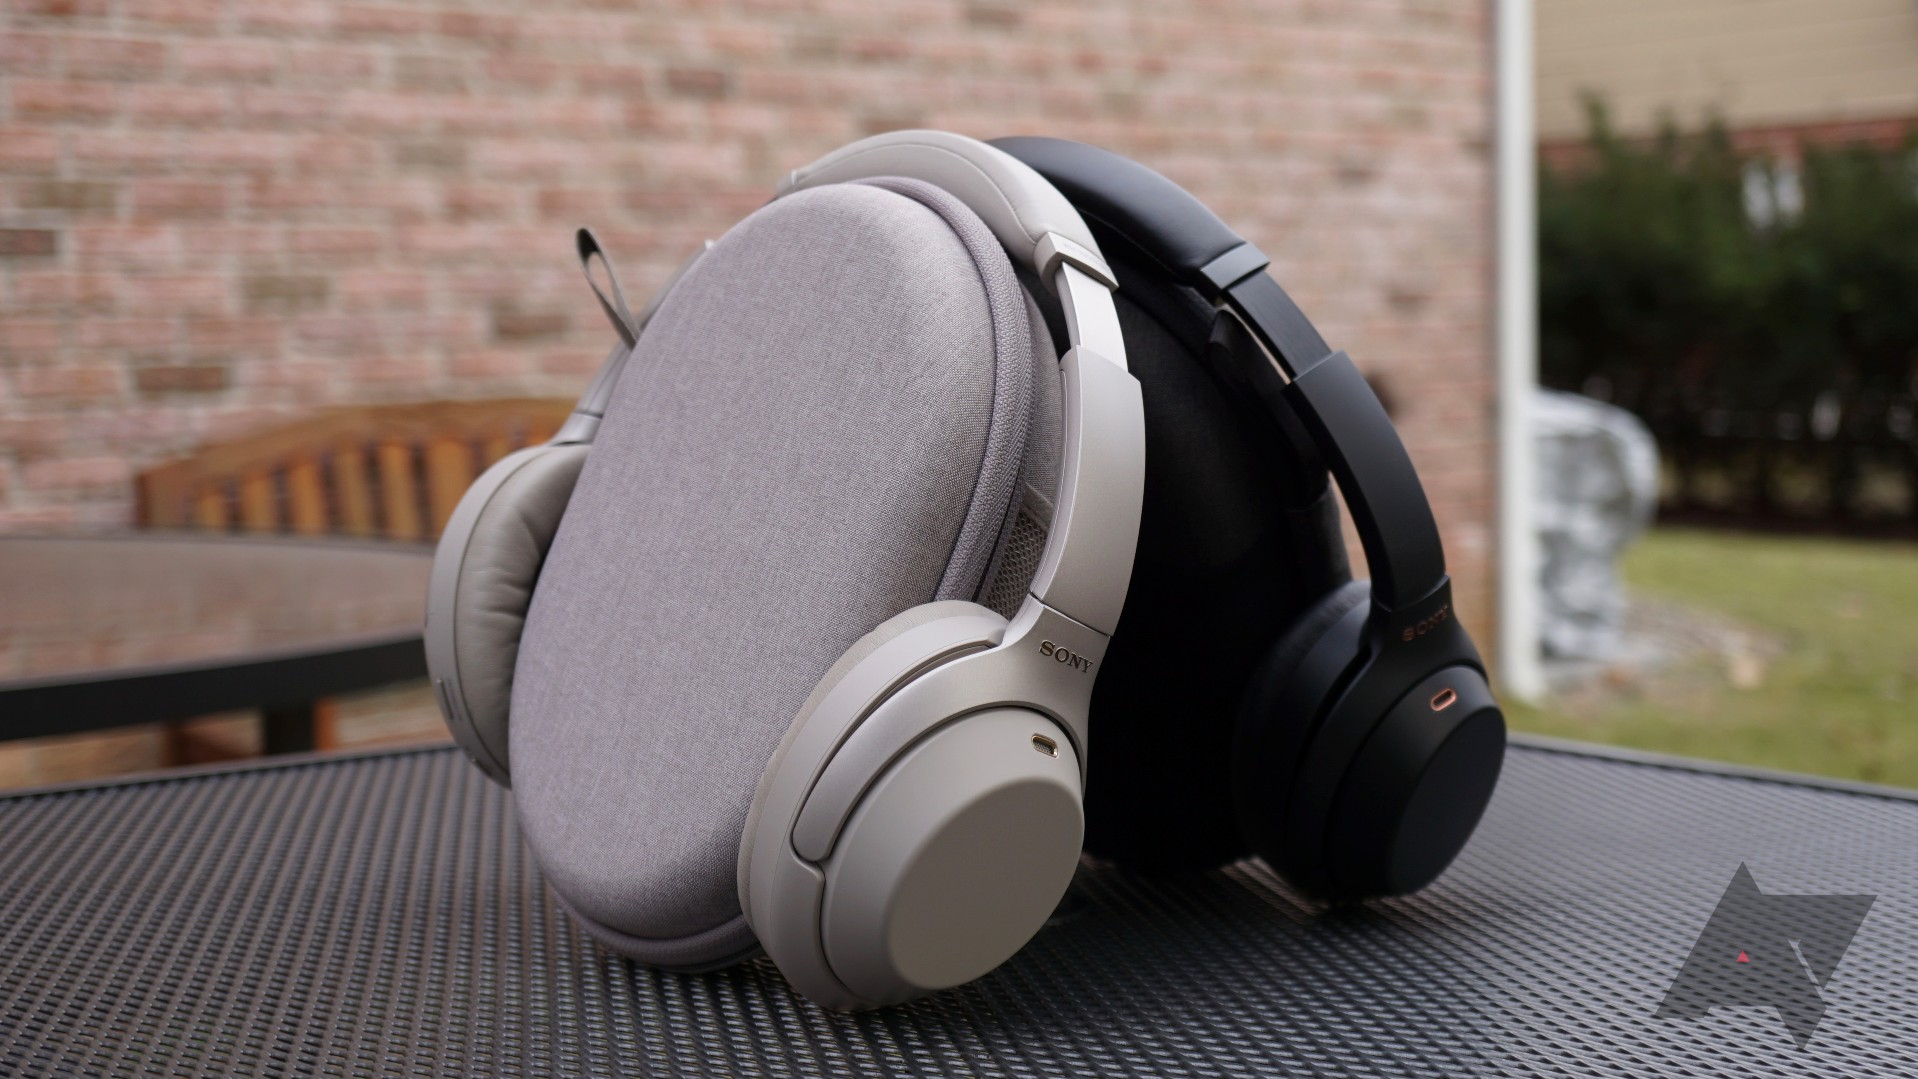 Block out the world with Sony's WH-1000XM3 noise-canceling headphones for just 0